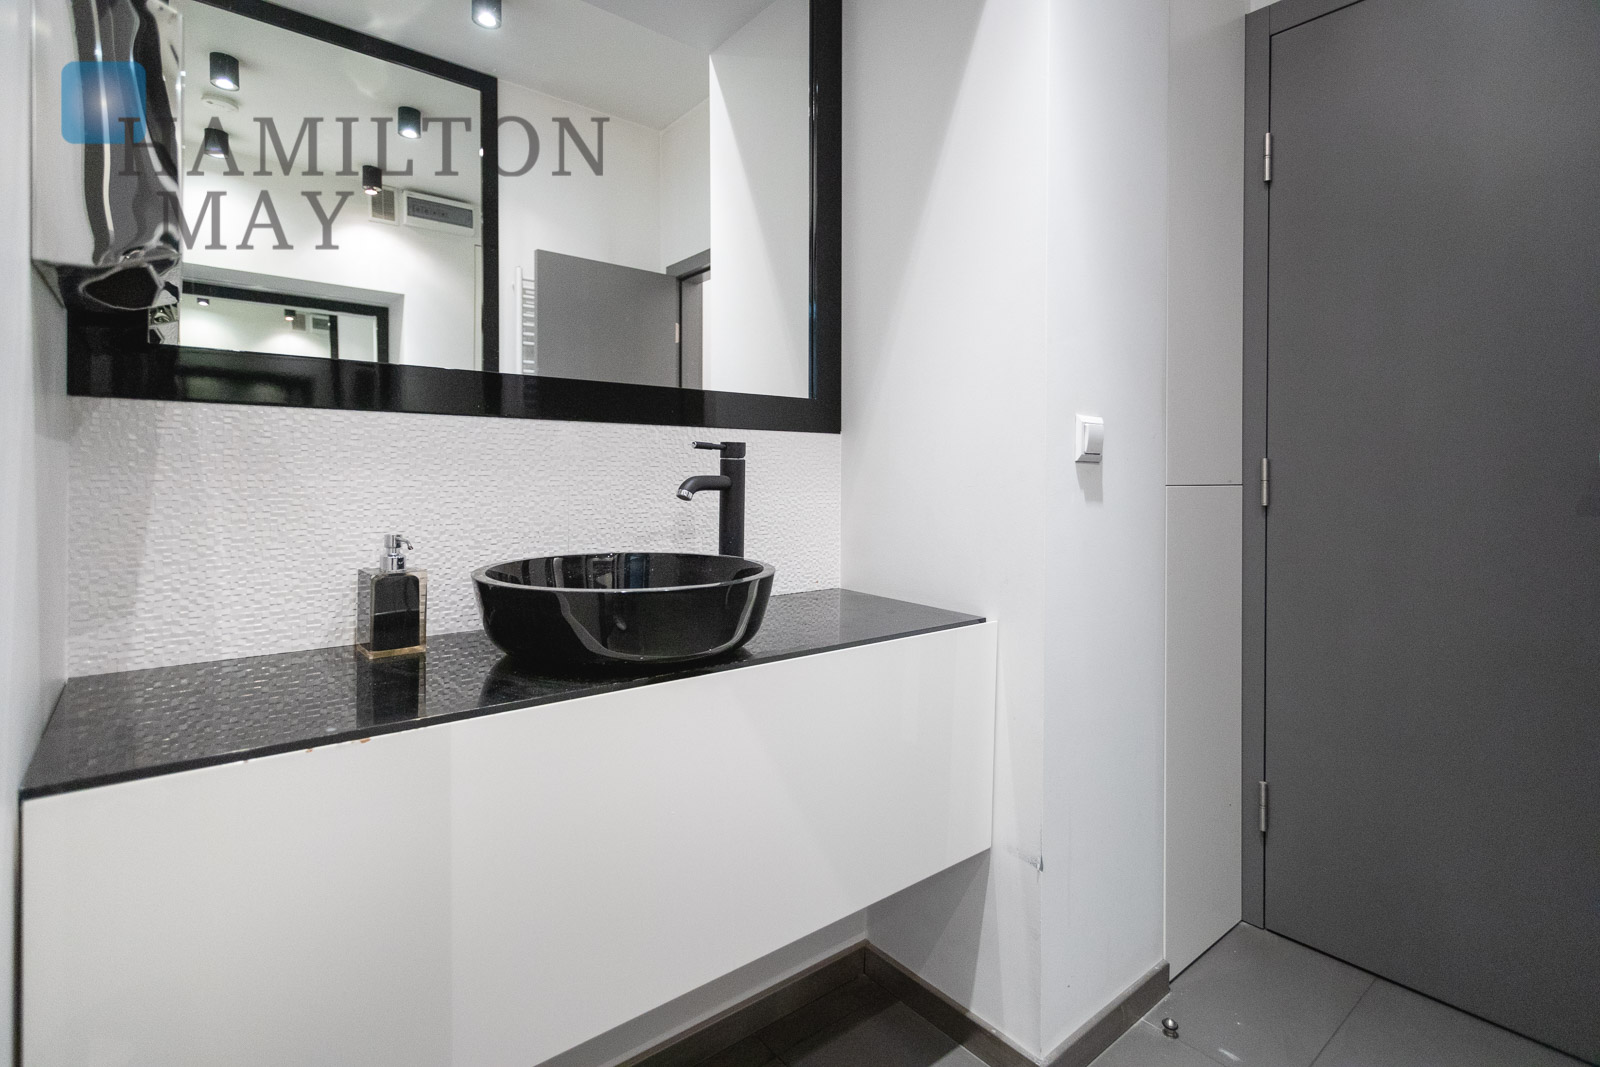 A commercial space with a tenant offered for sale in a modern, discreet townhouse in the Kazimierz district Krakow for sale